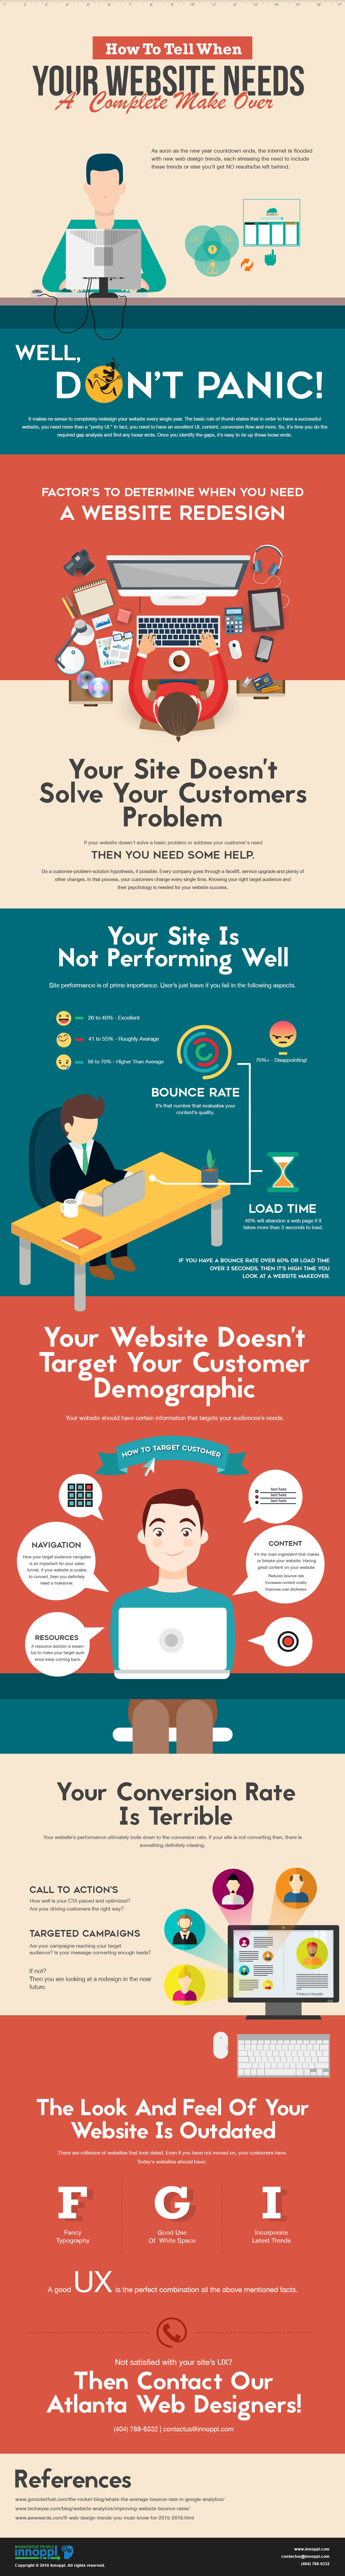 how-to-tell-when-your-website-needs-a-complete-make-over-infographic-plaza